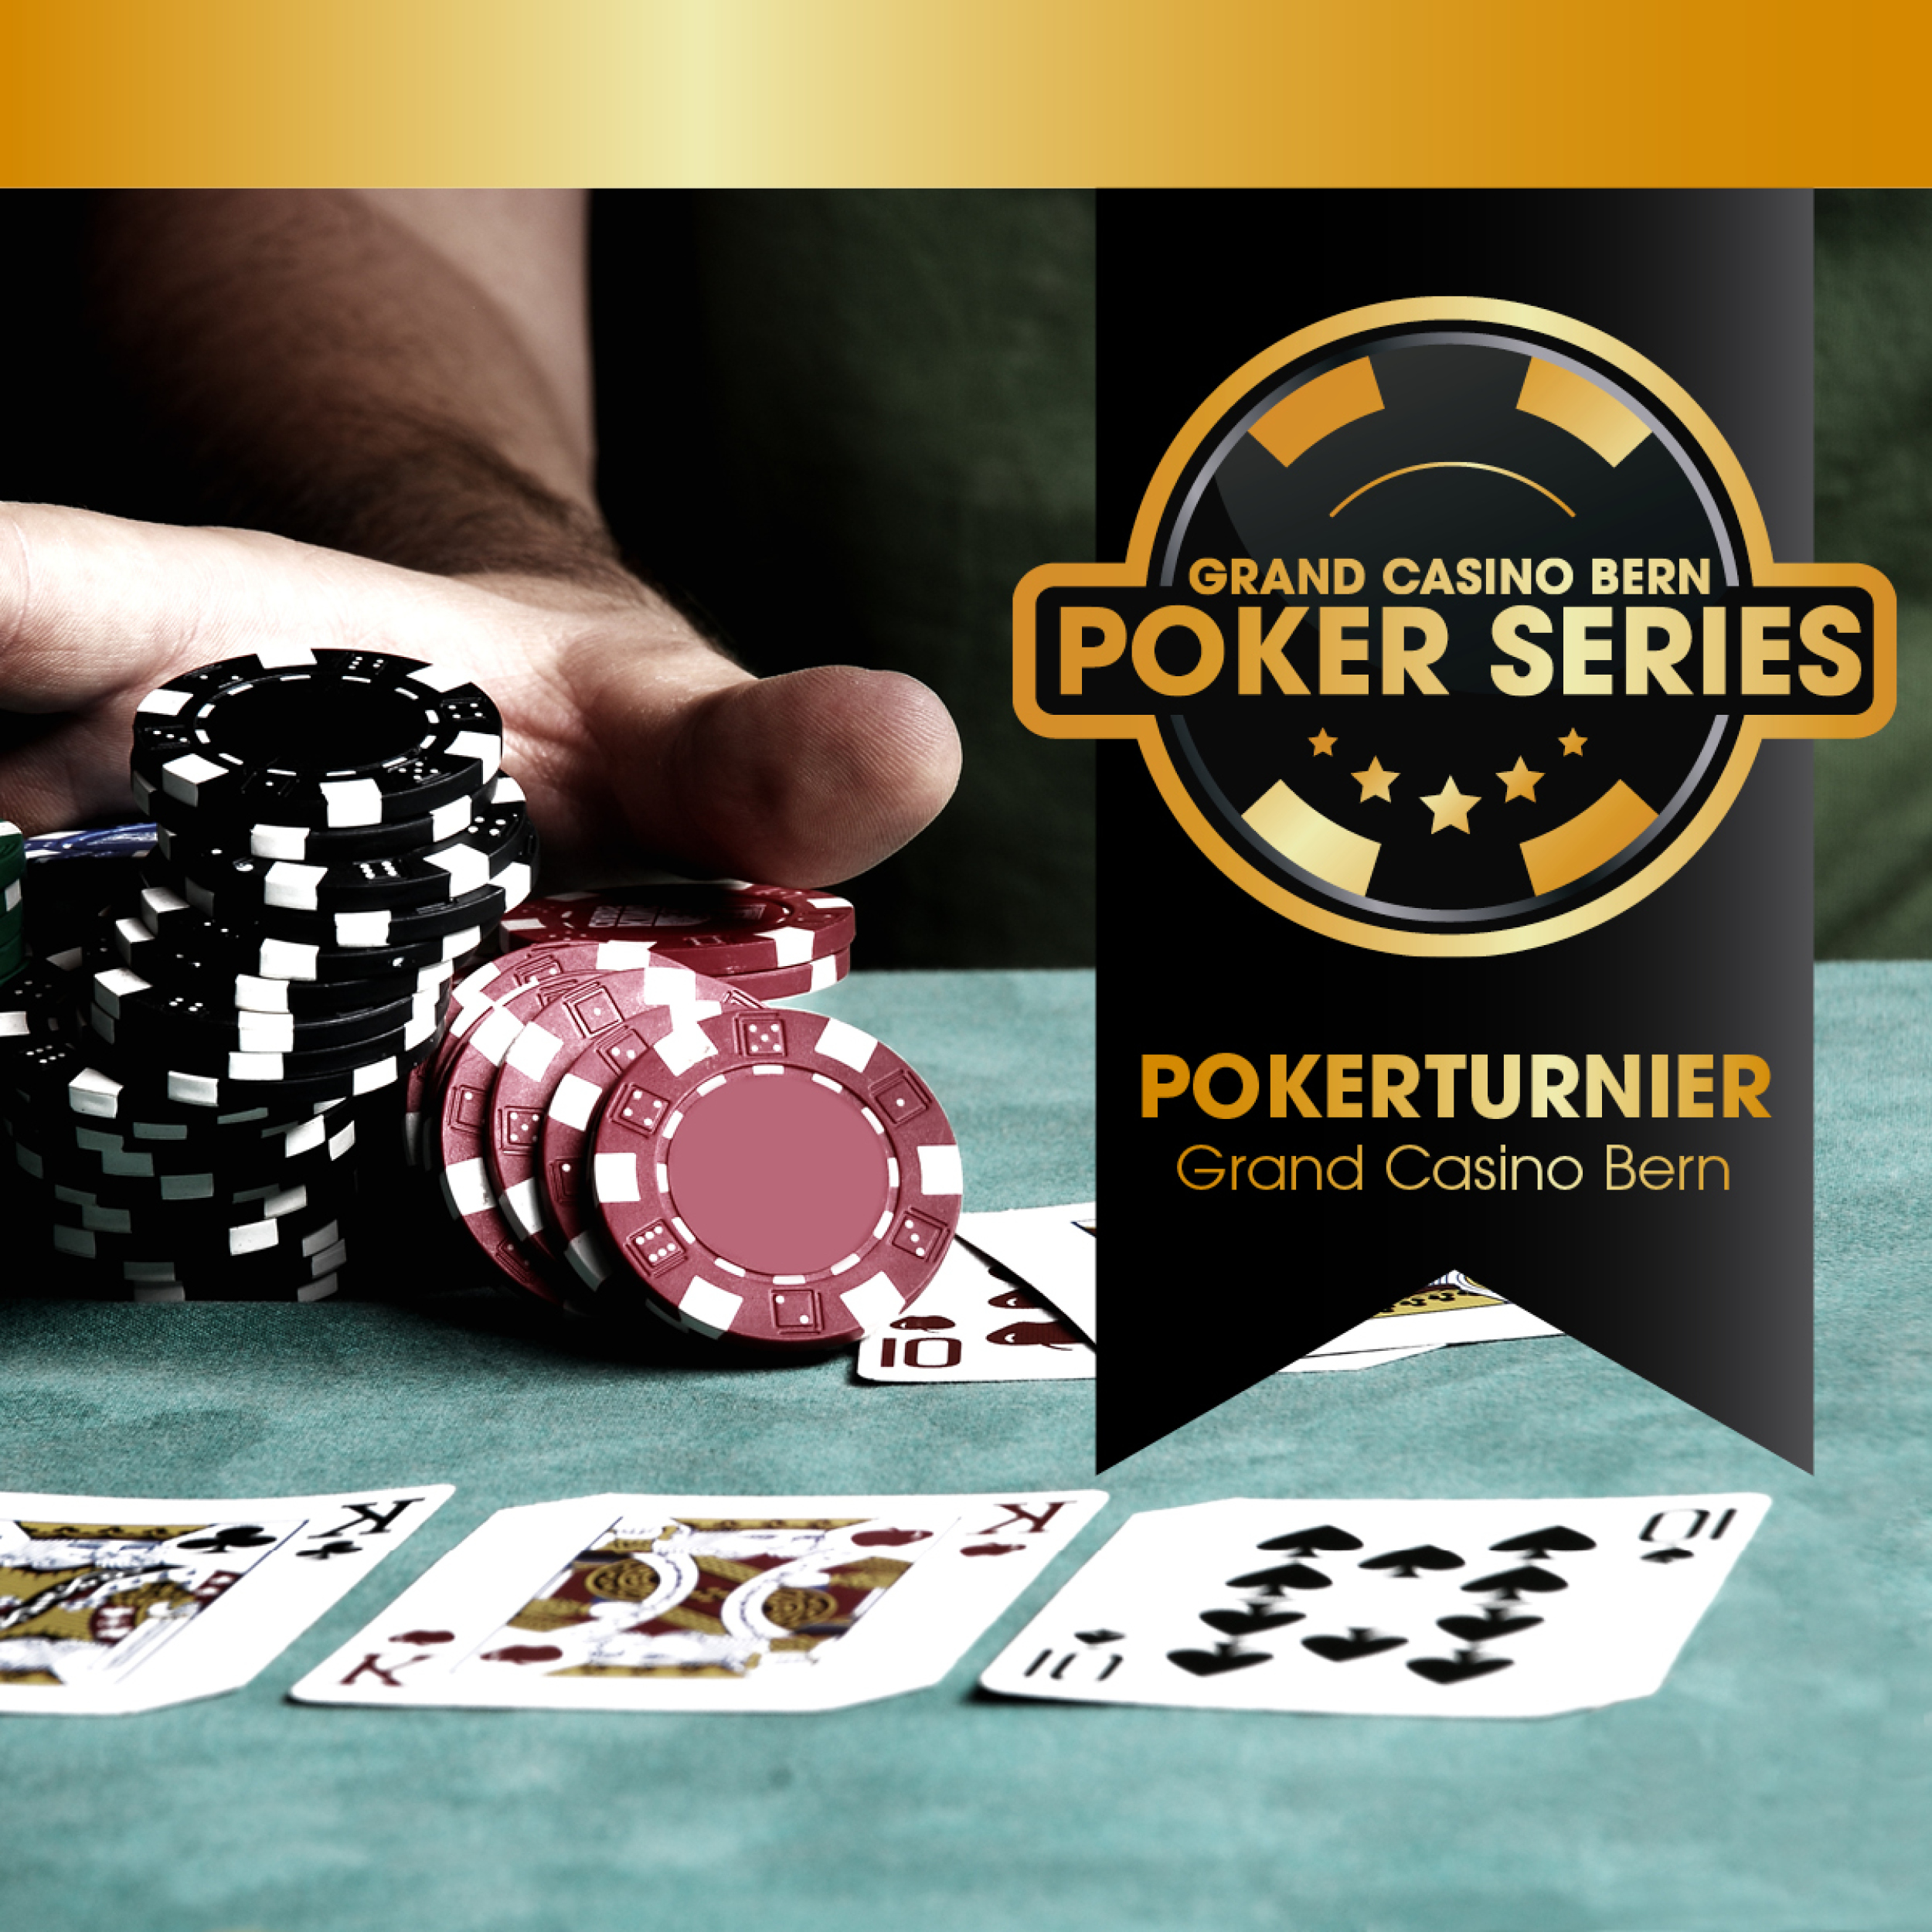 GC Bern Poker Series 2020